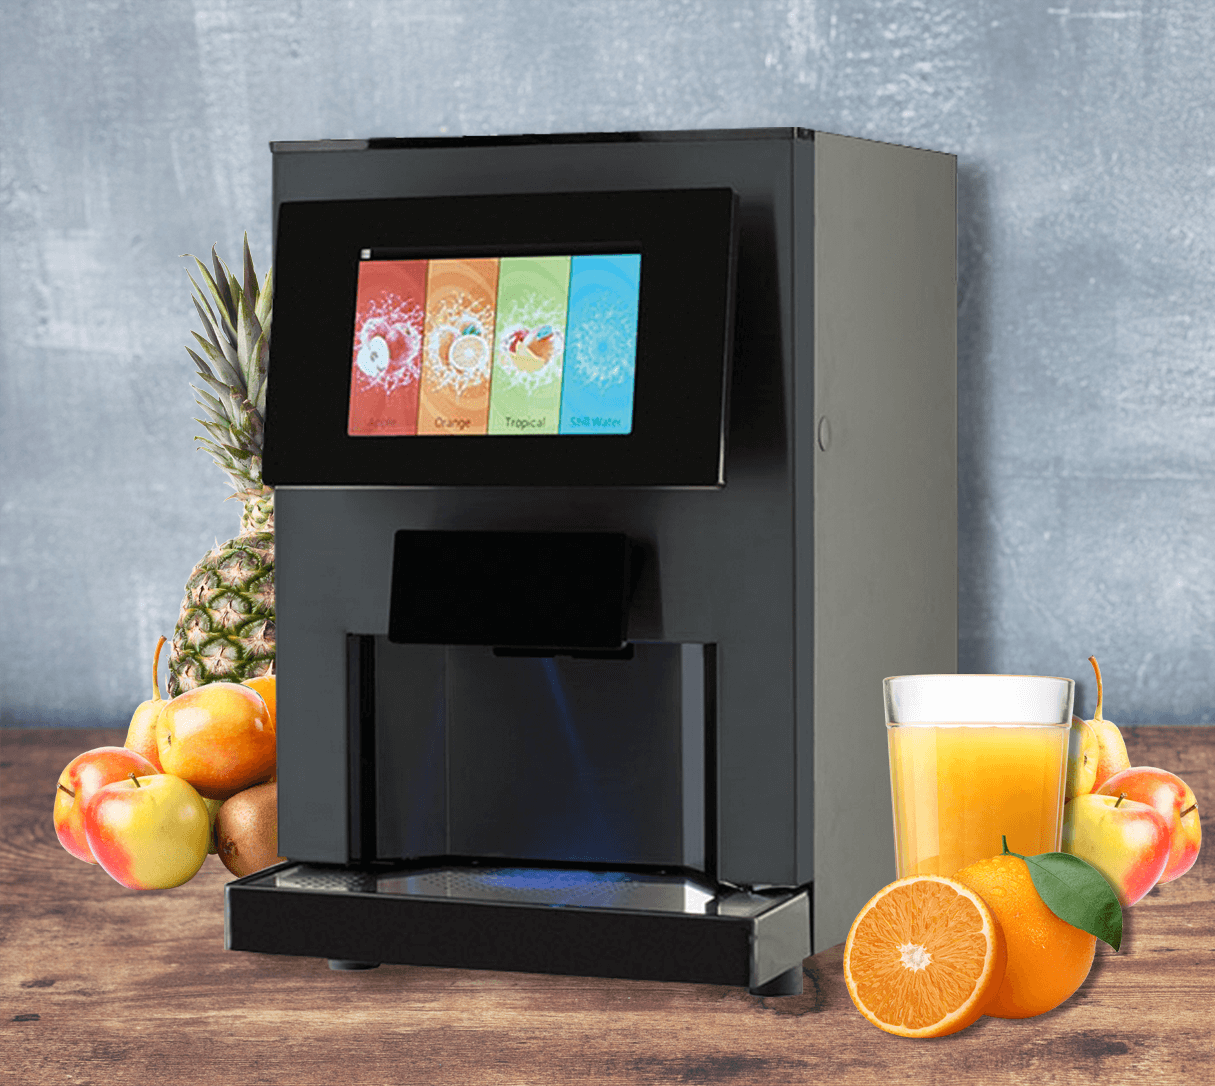 HLF juice machine with a selection of fruits